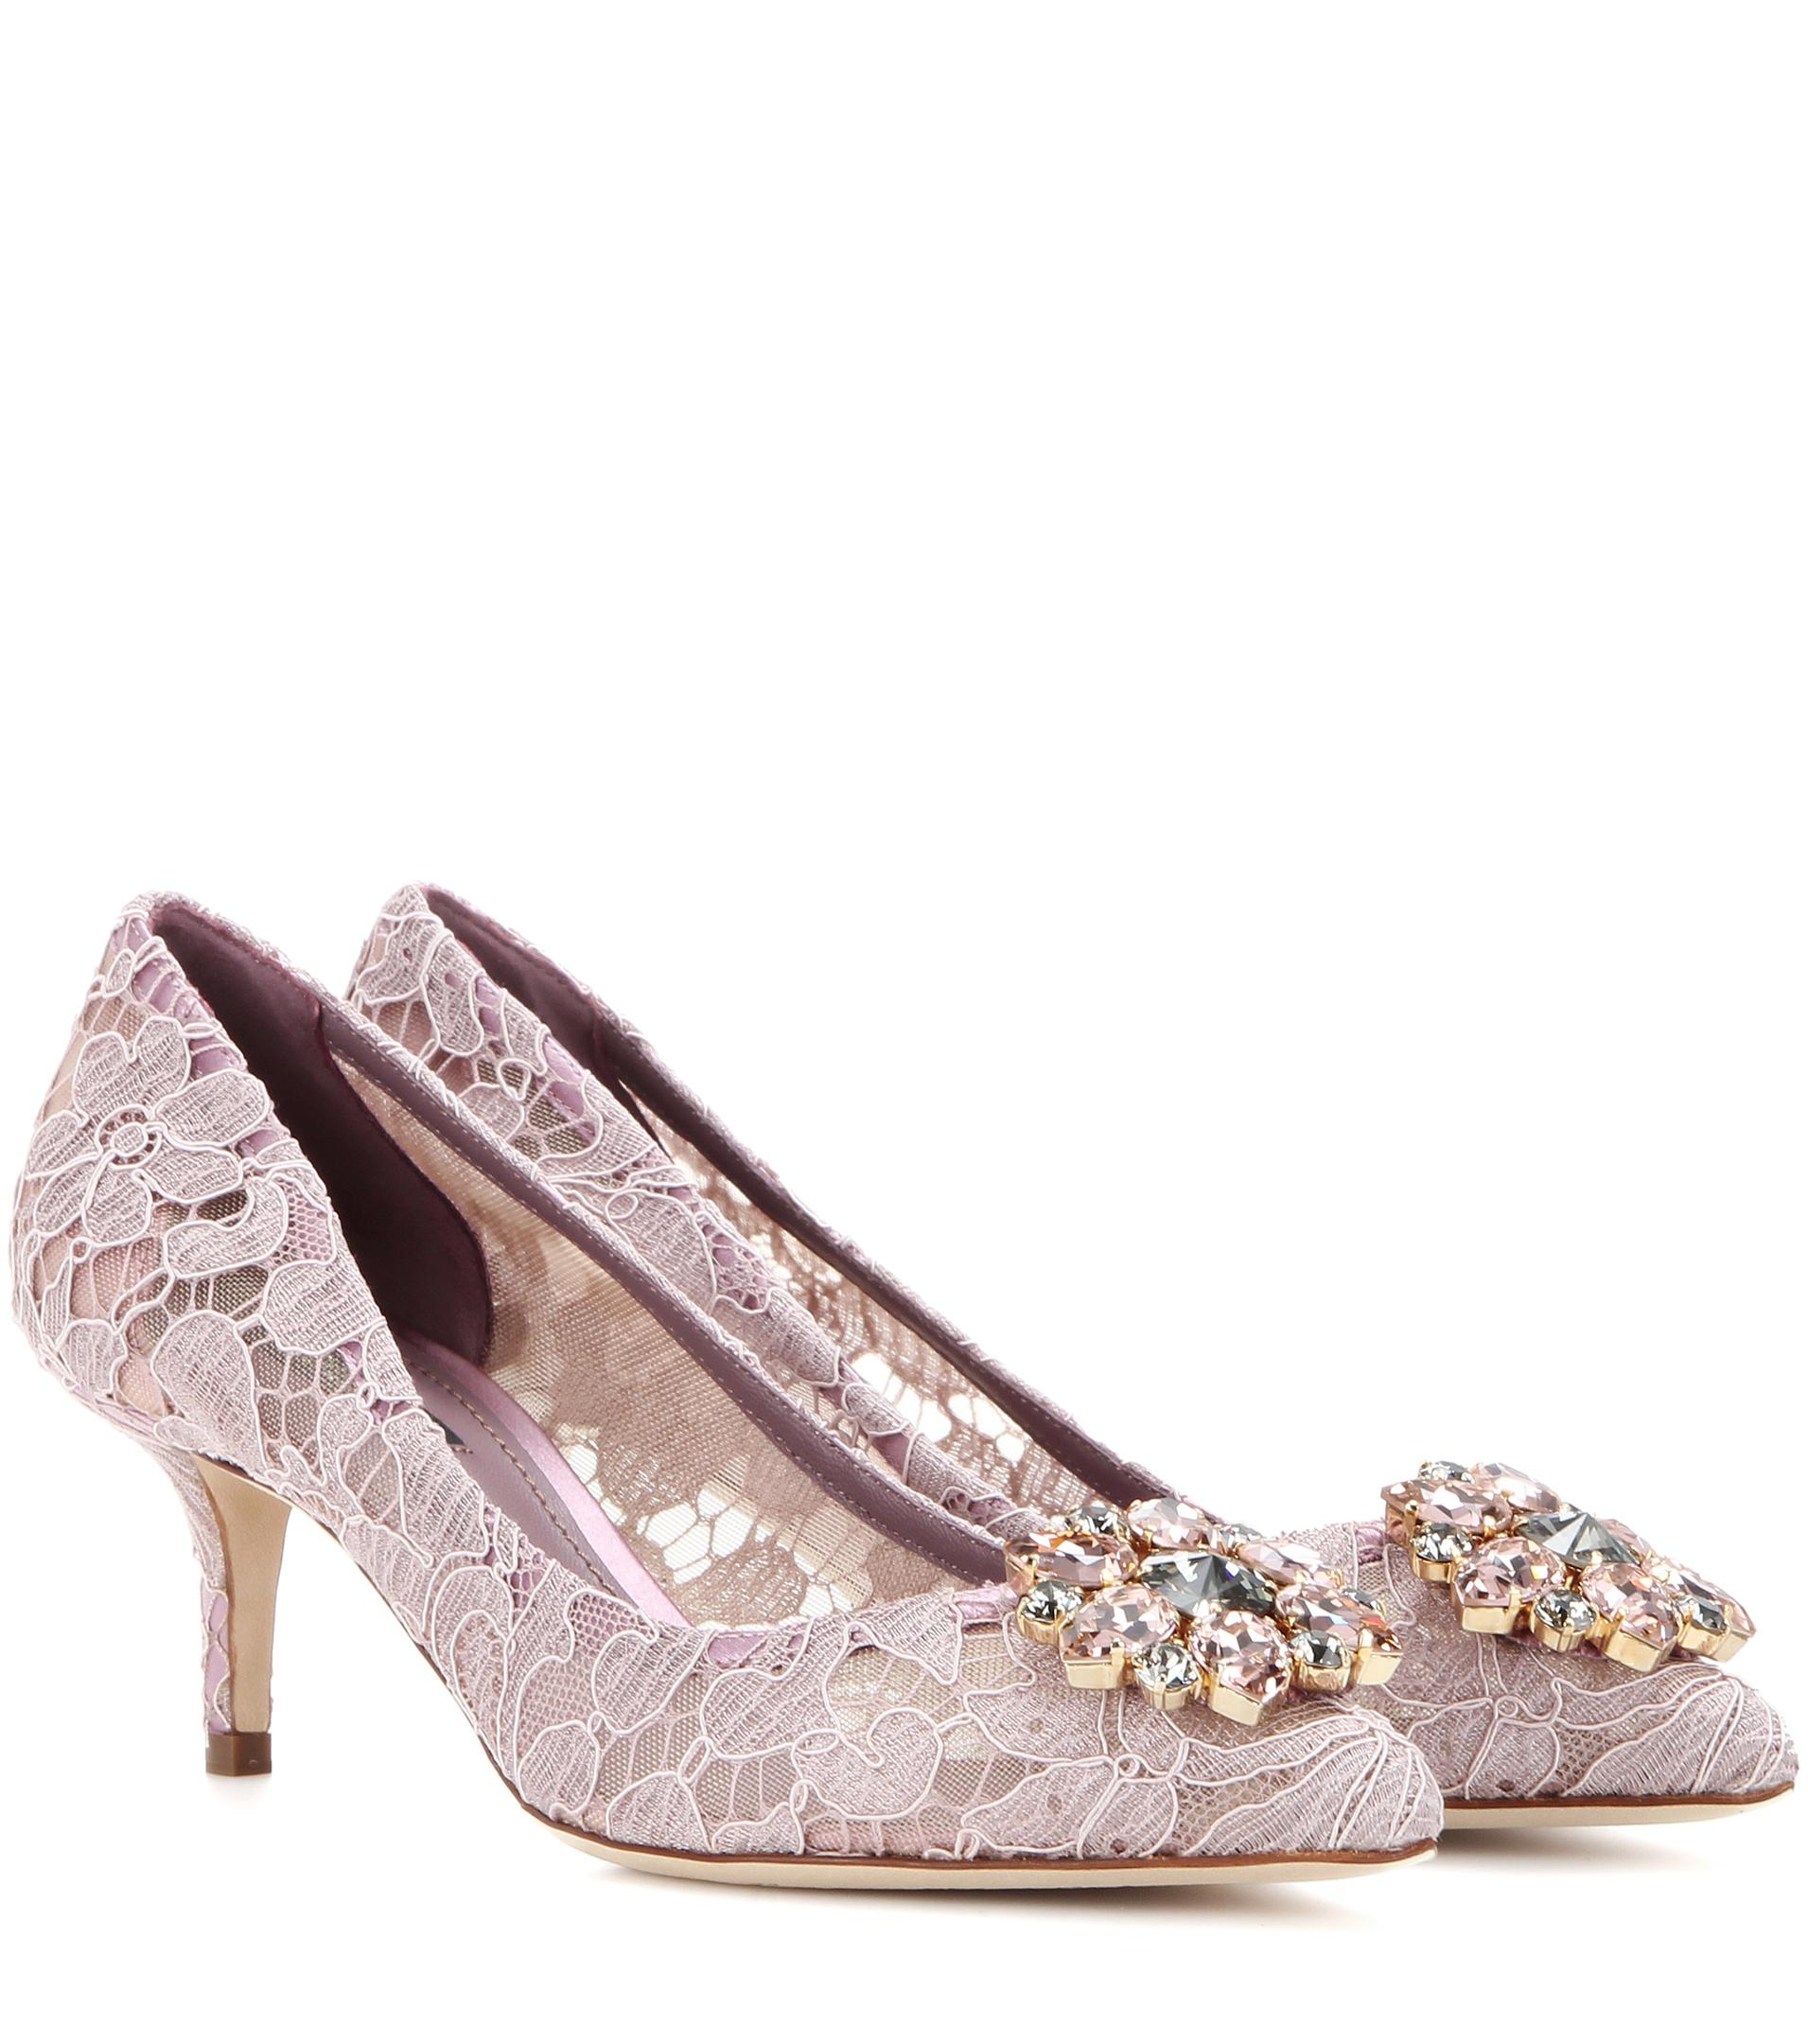 Pink Belucci 90 lace pumps with crystals - Pink & Purple Dolce & Gabbana PzEFLH